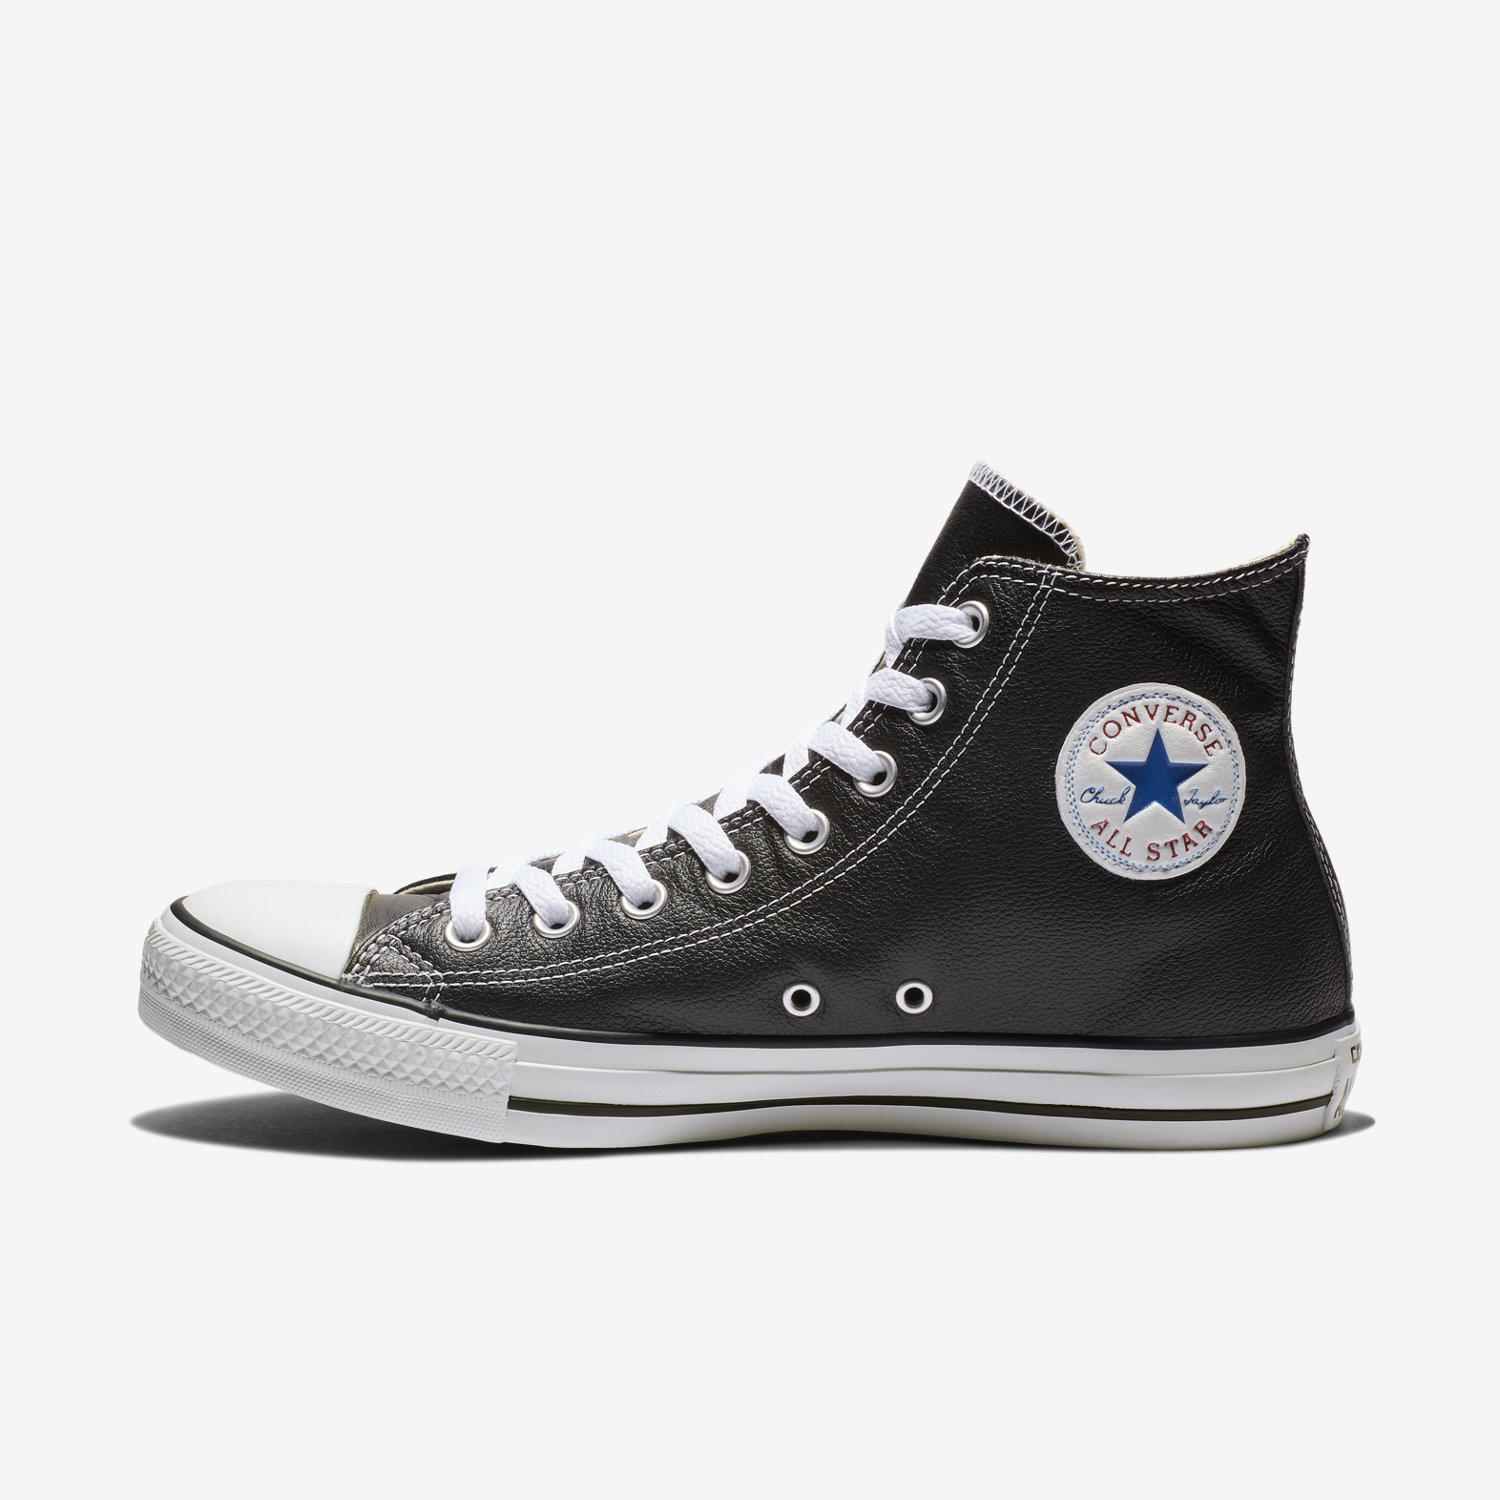 converse all star leather hi shoes white style guru. Black Bedroom Furniture Sets. Home Design Ideas